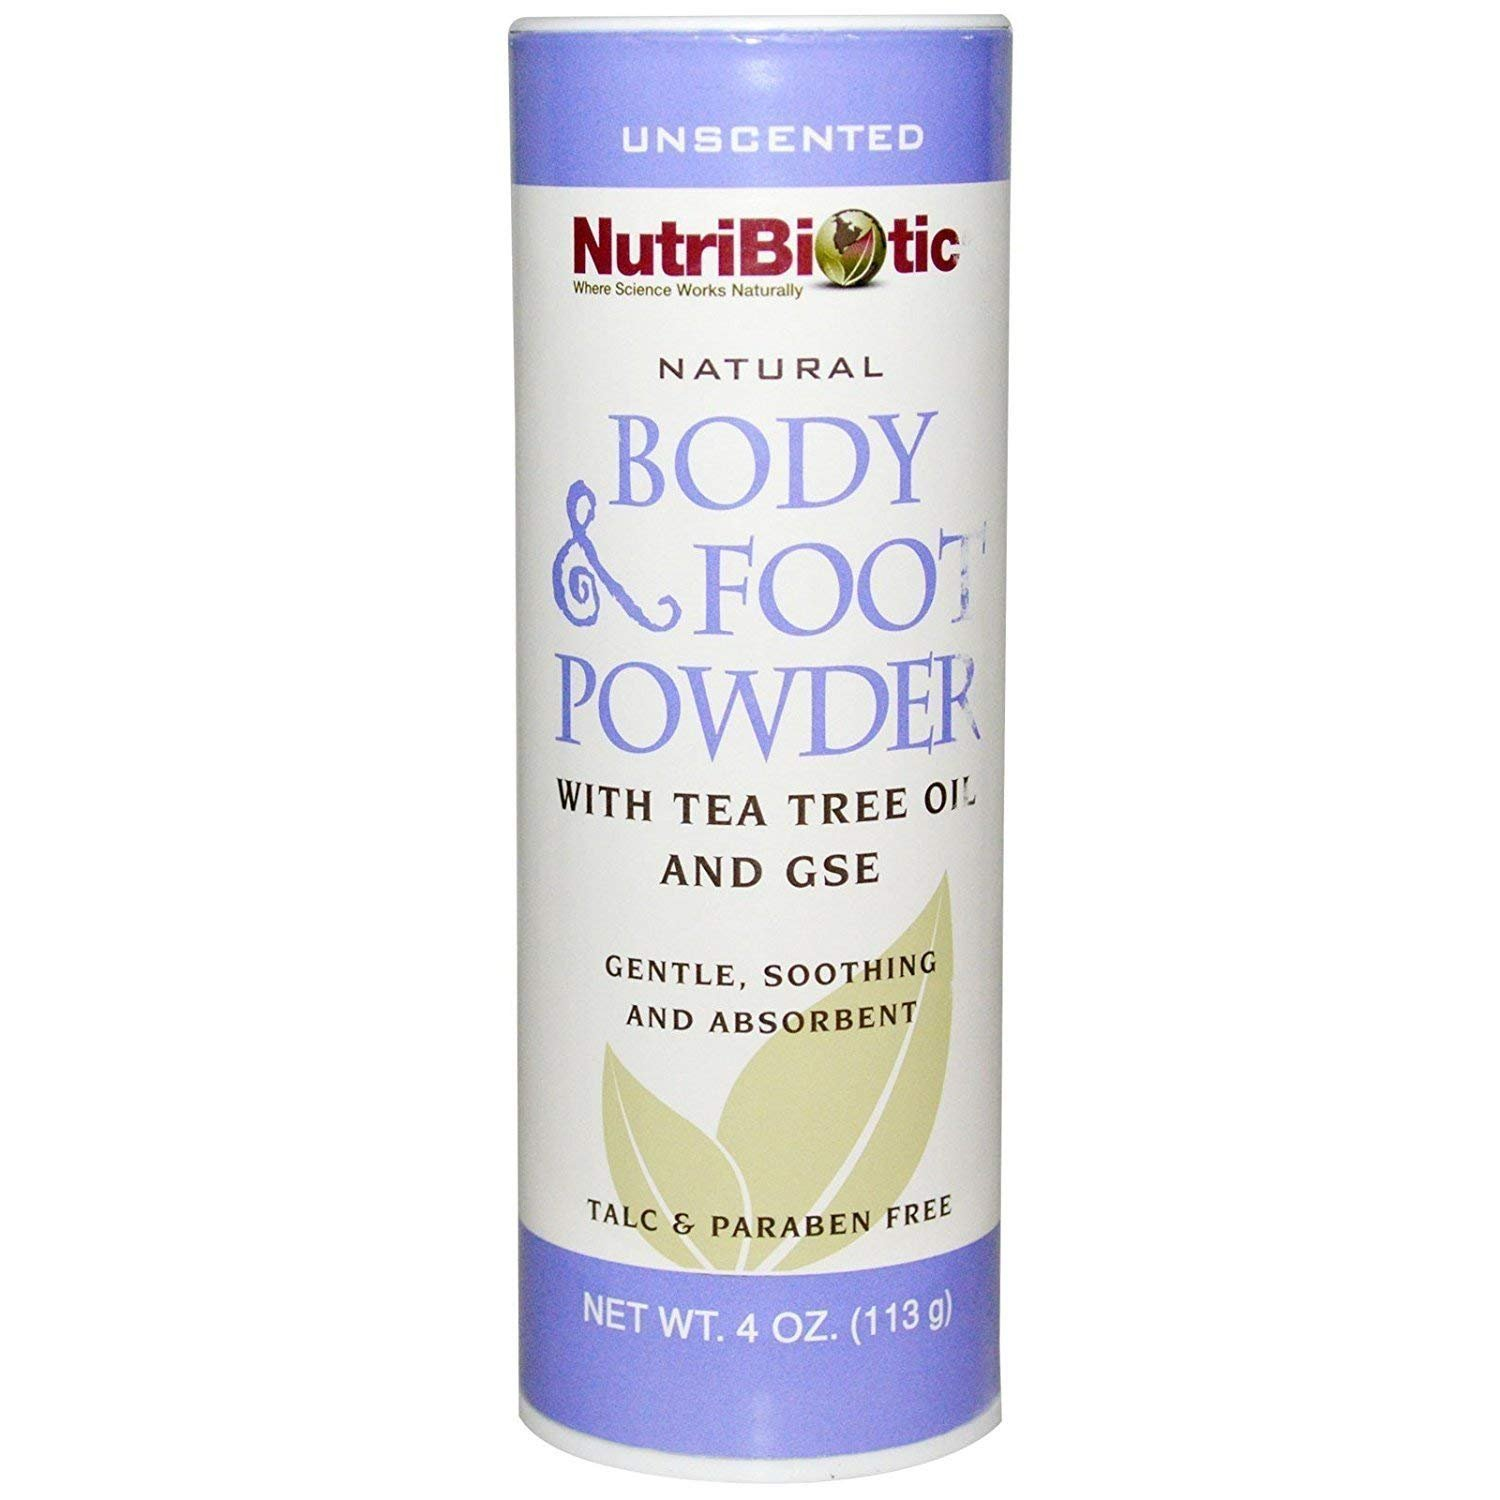 Nutribiotic Natural Body & Foot Powder Unscented, 4 Oz NBC10607